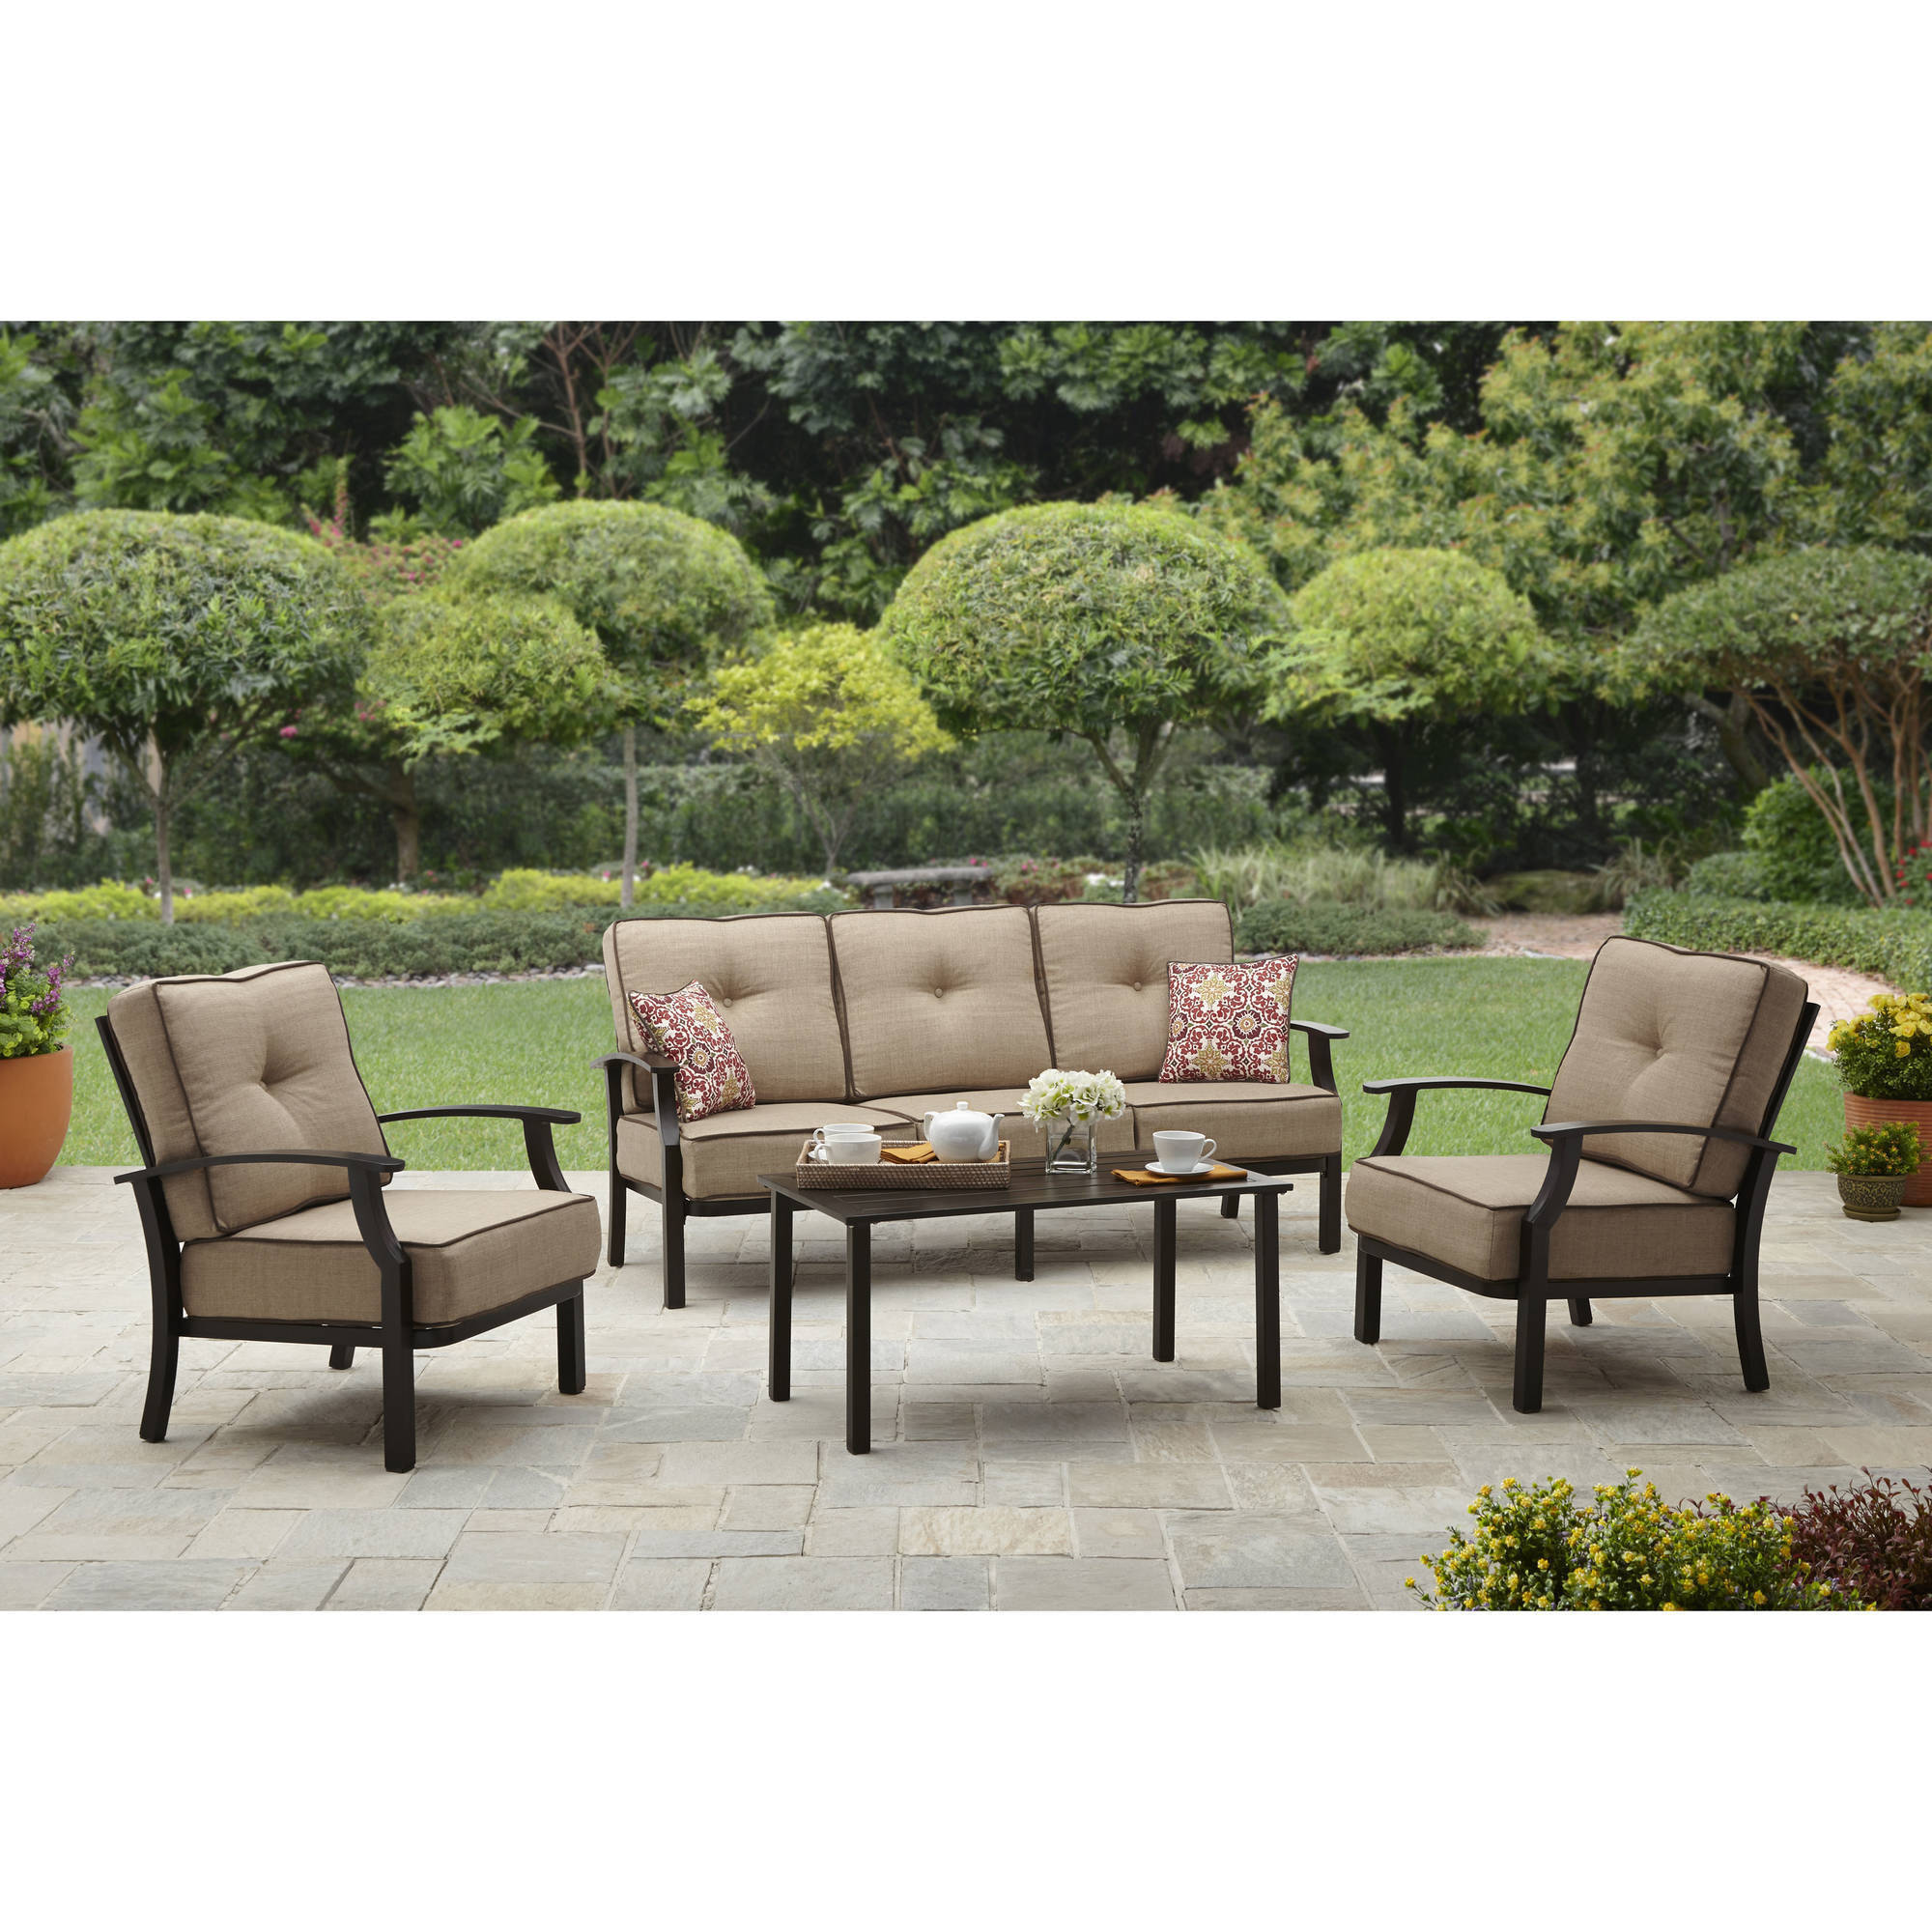 Elegant Mainstays Ragan Meadow II Piece Outdoor Sectional Sofa Seats Walmart